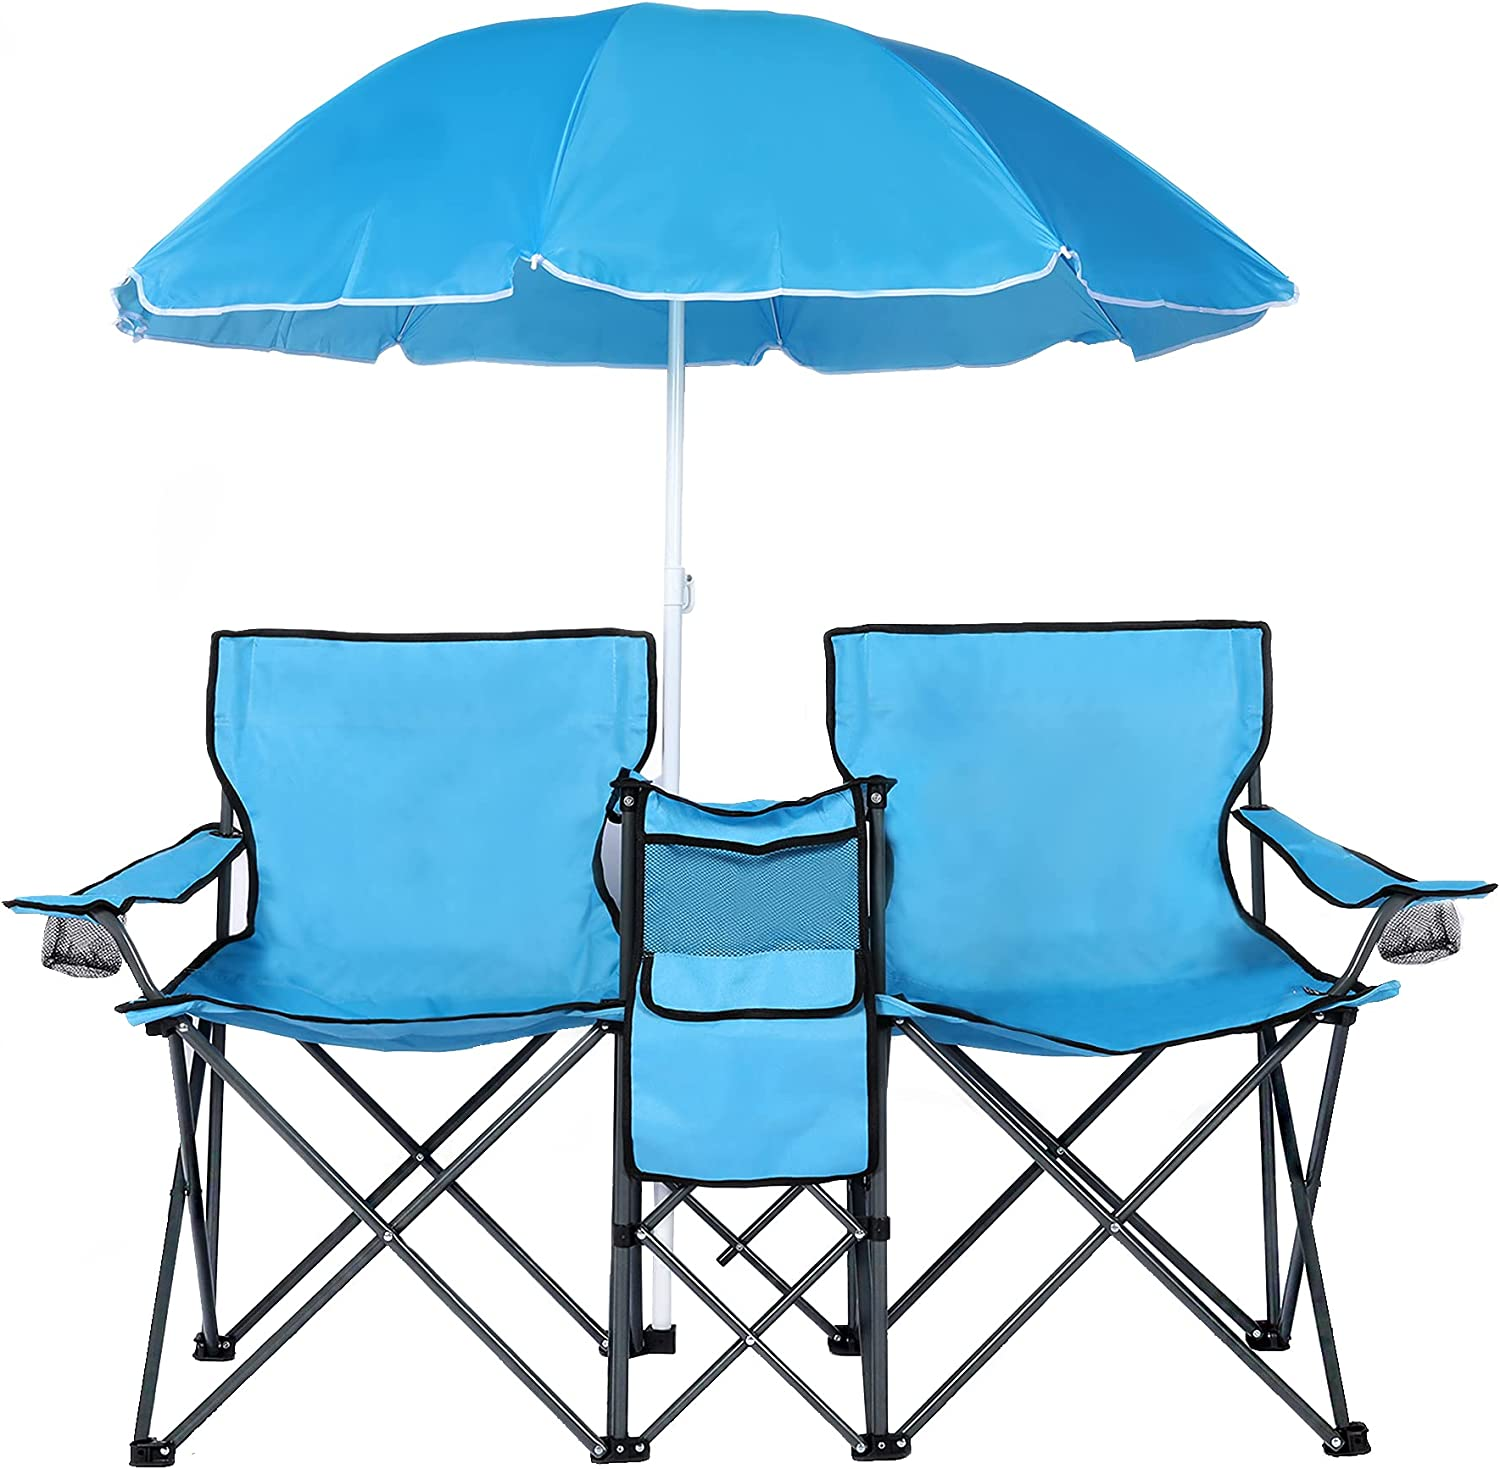 OKL Double Portable Picnic Chair Daily bargain sale Folding W Camping Umbrell Gifts